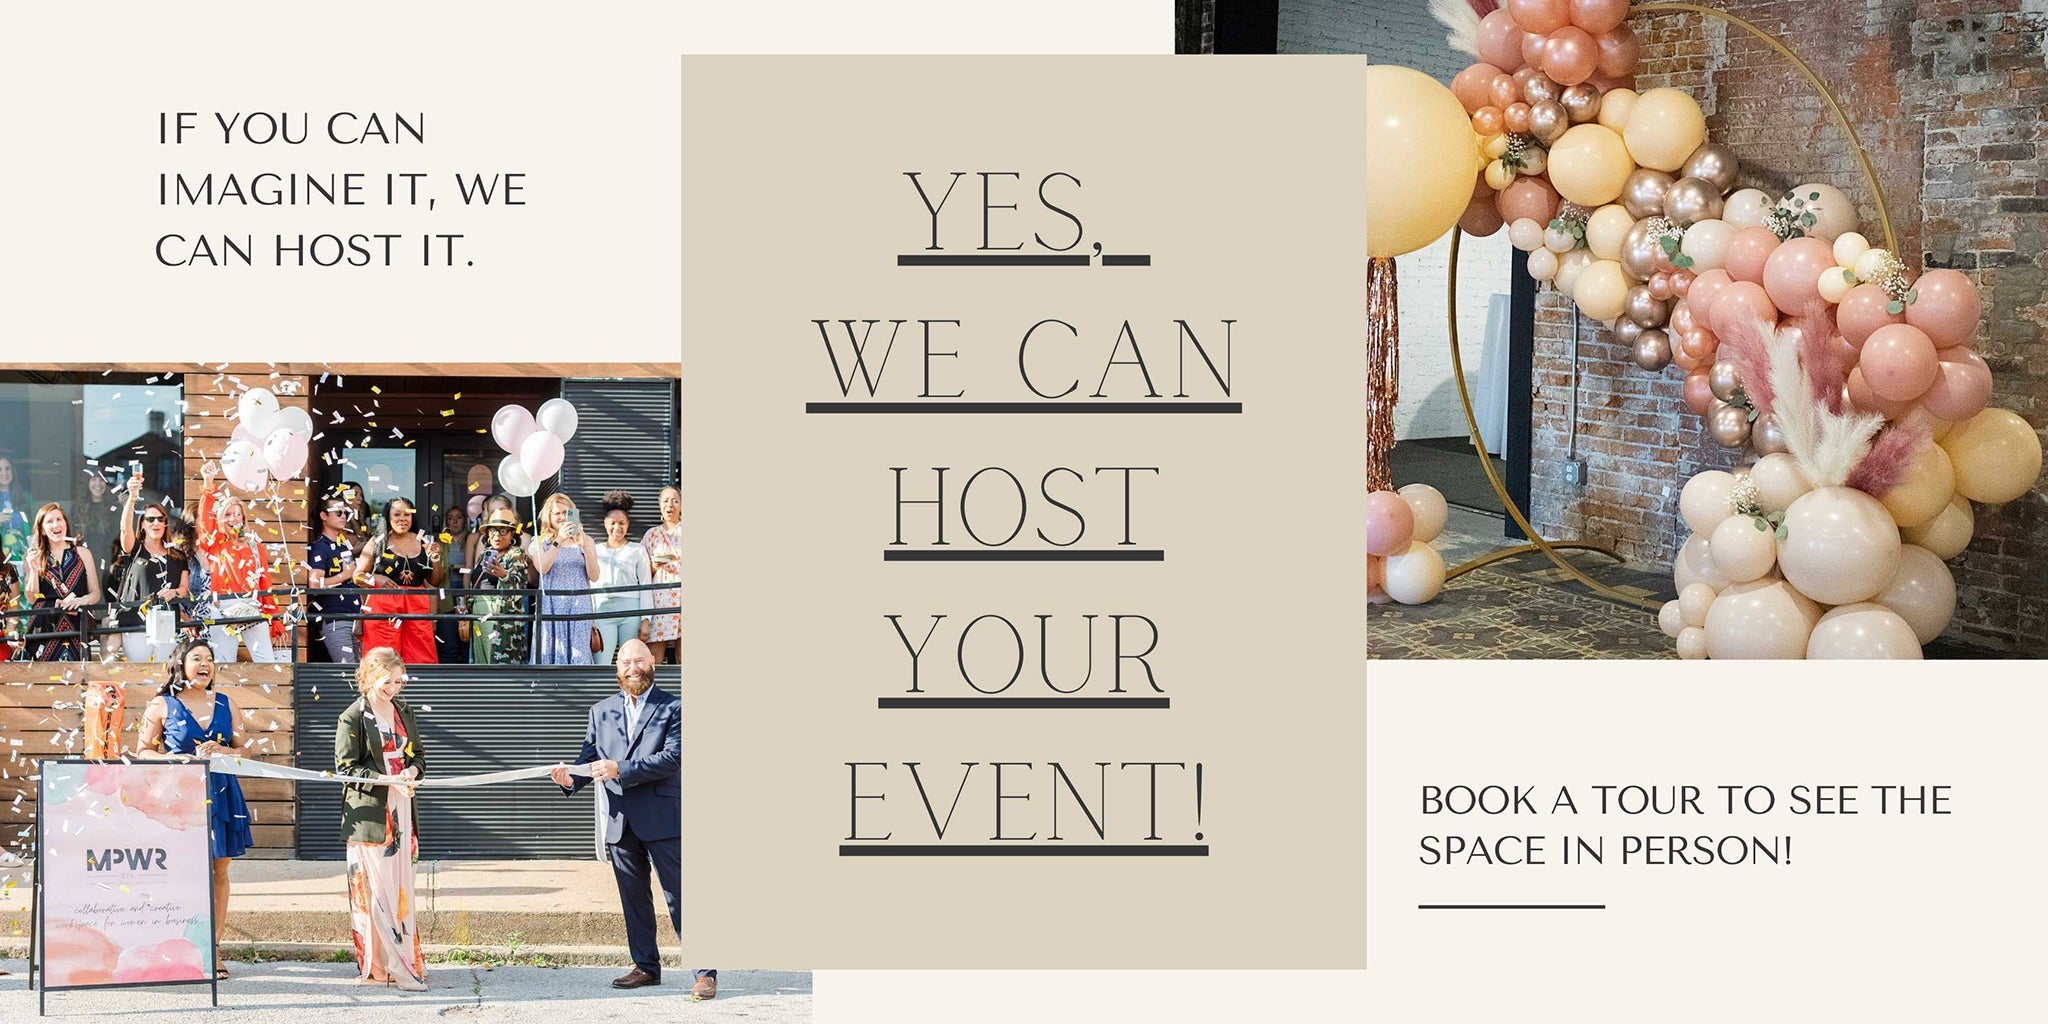 Yes, we can host your event!